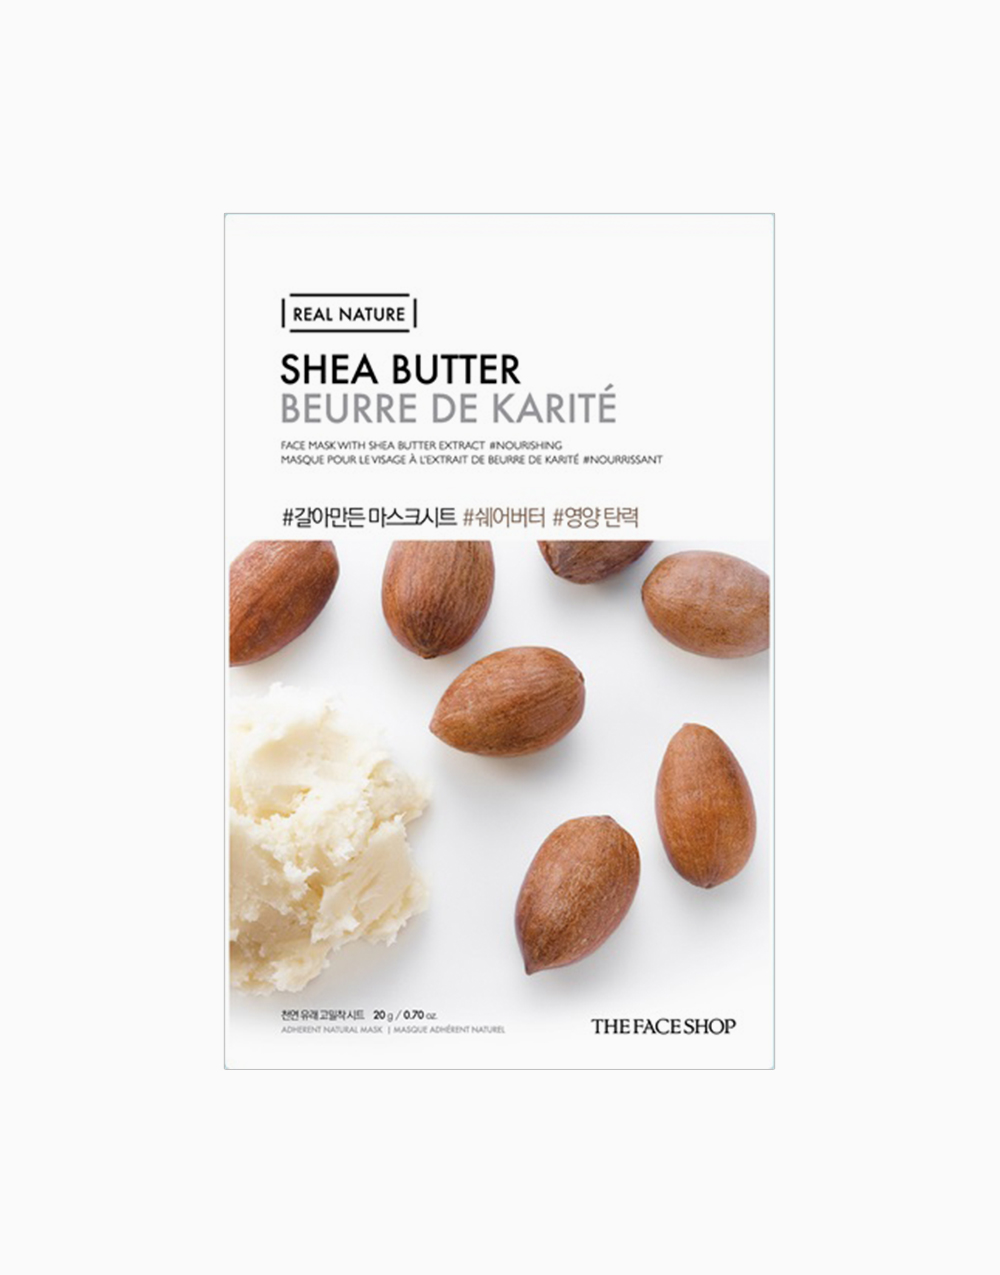 Real Nature Shea Butter Face Mask by The Face Shop